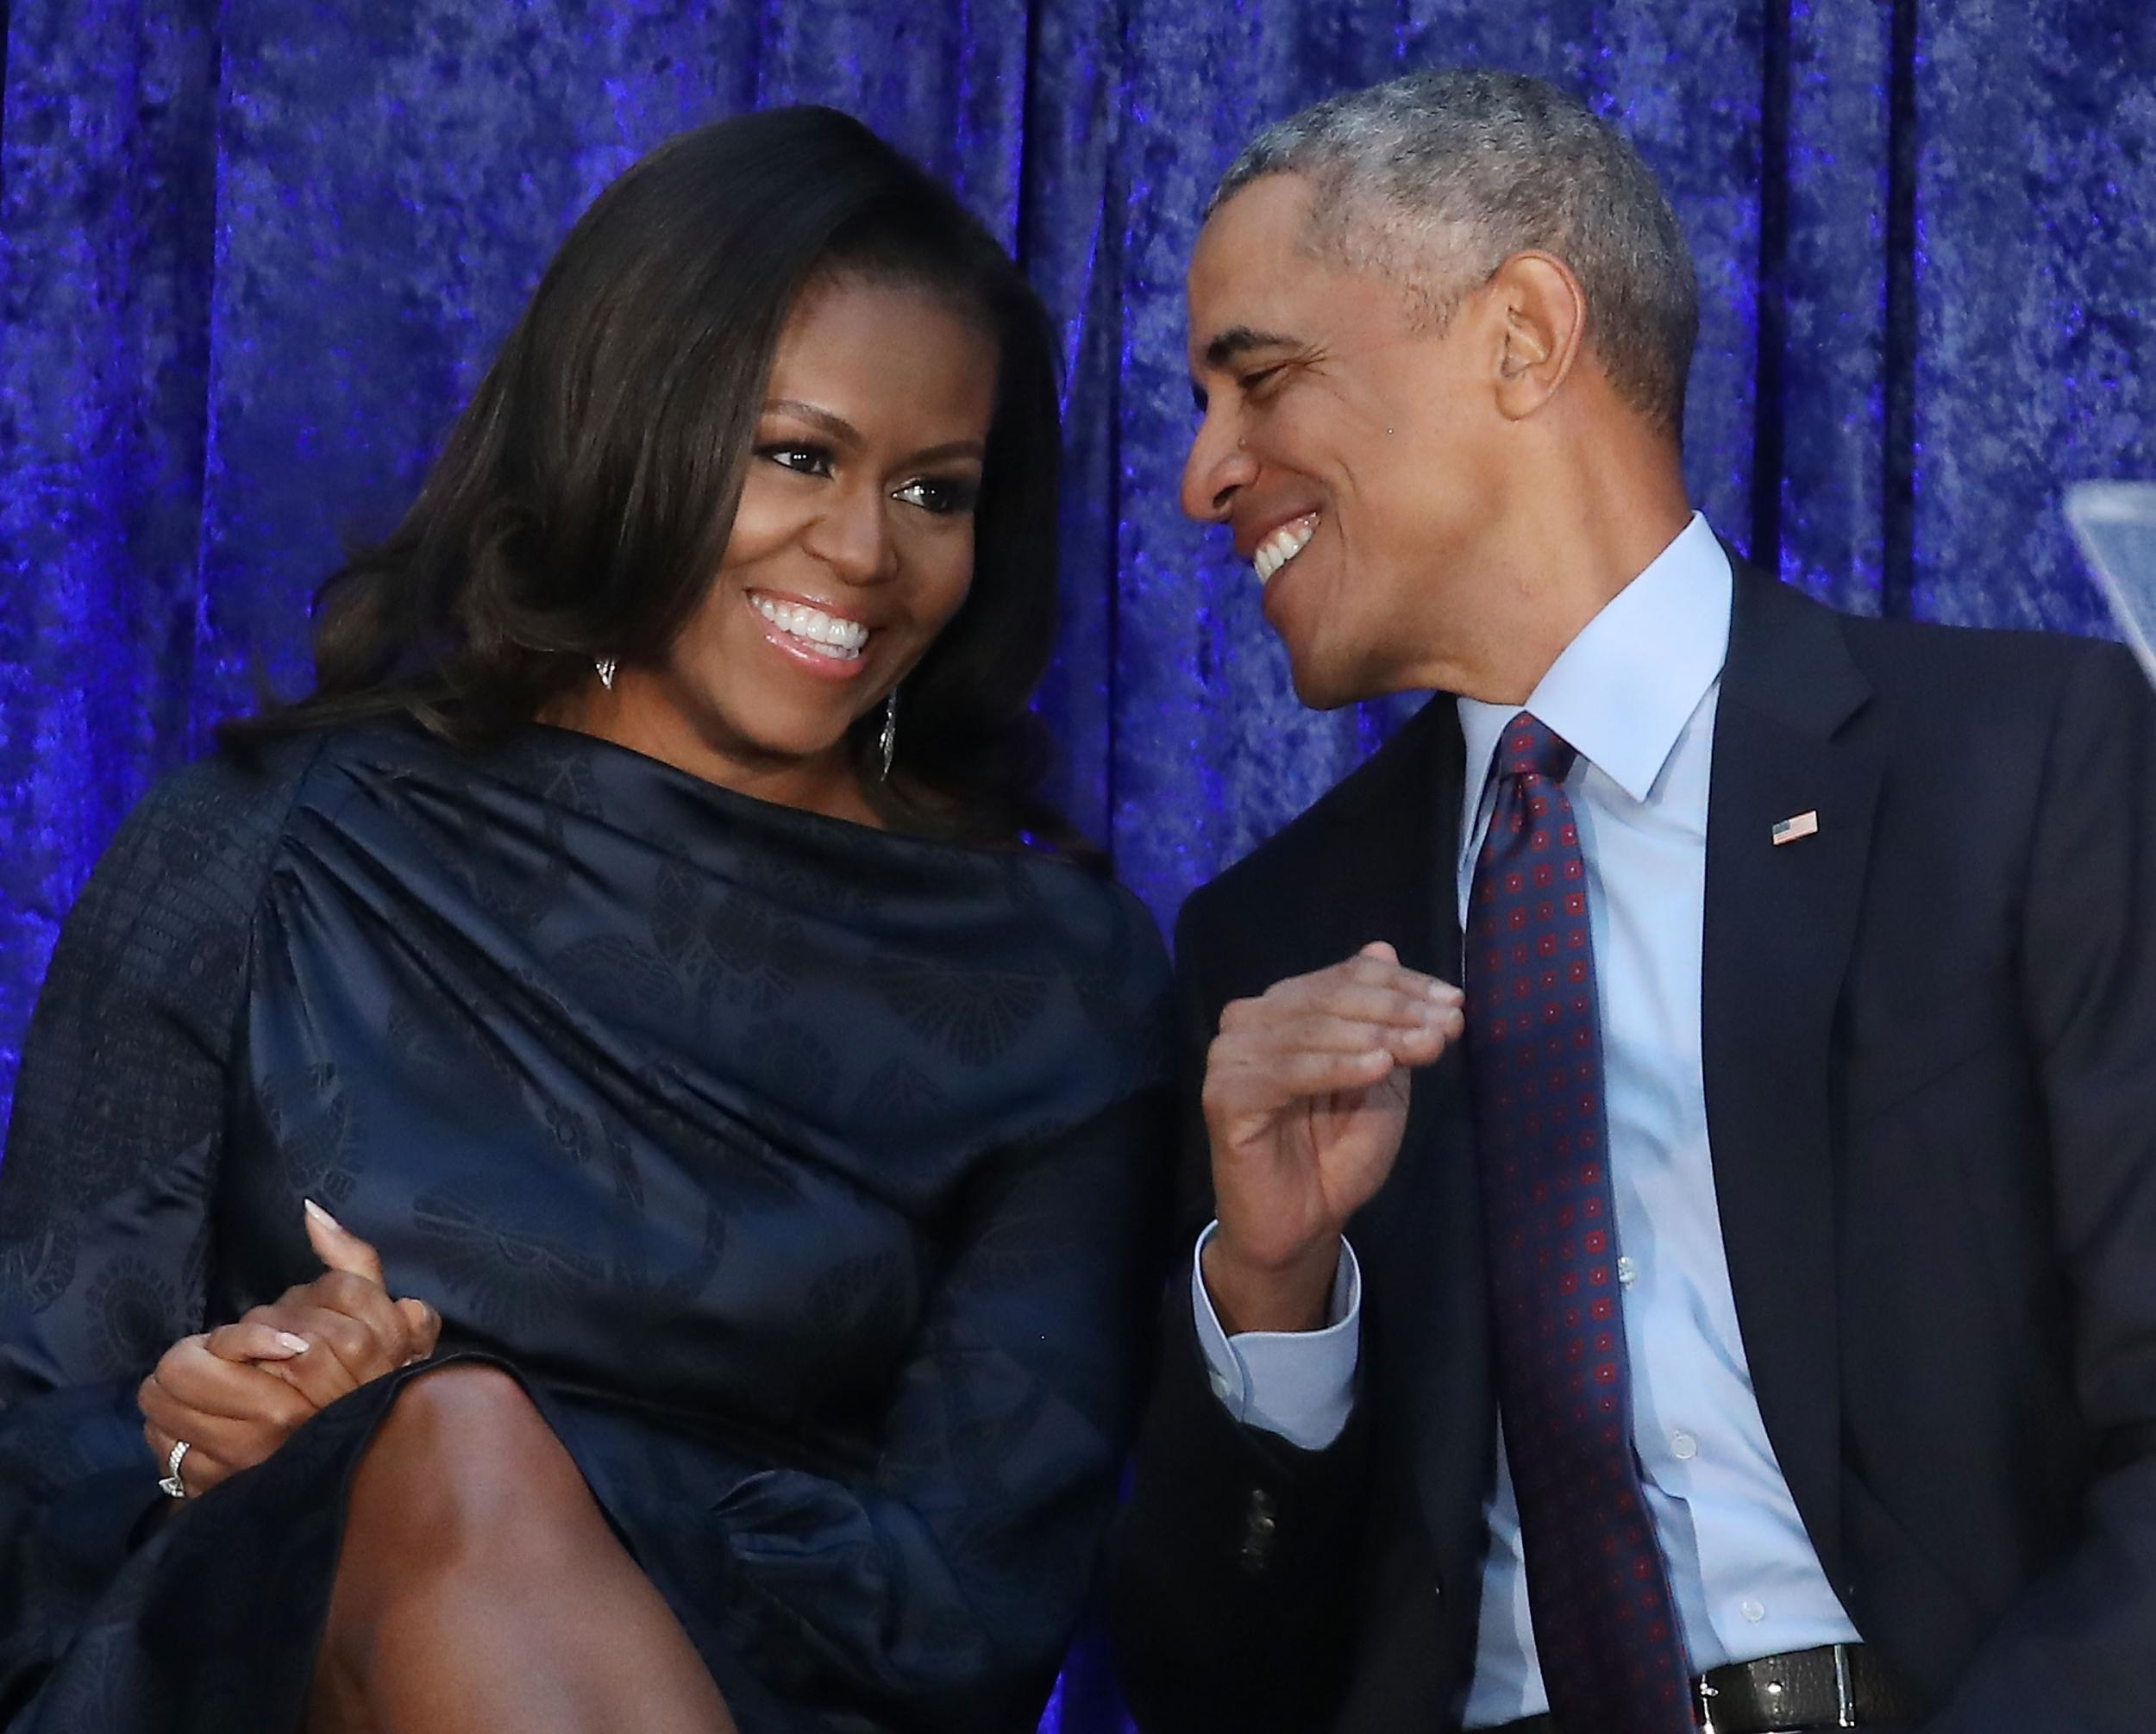 president obama - latest news, breaking stories and comment - The ...